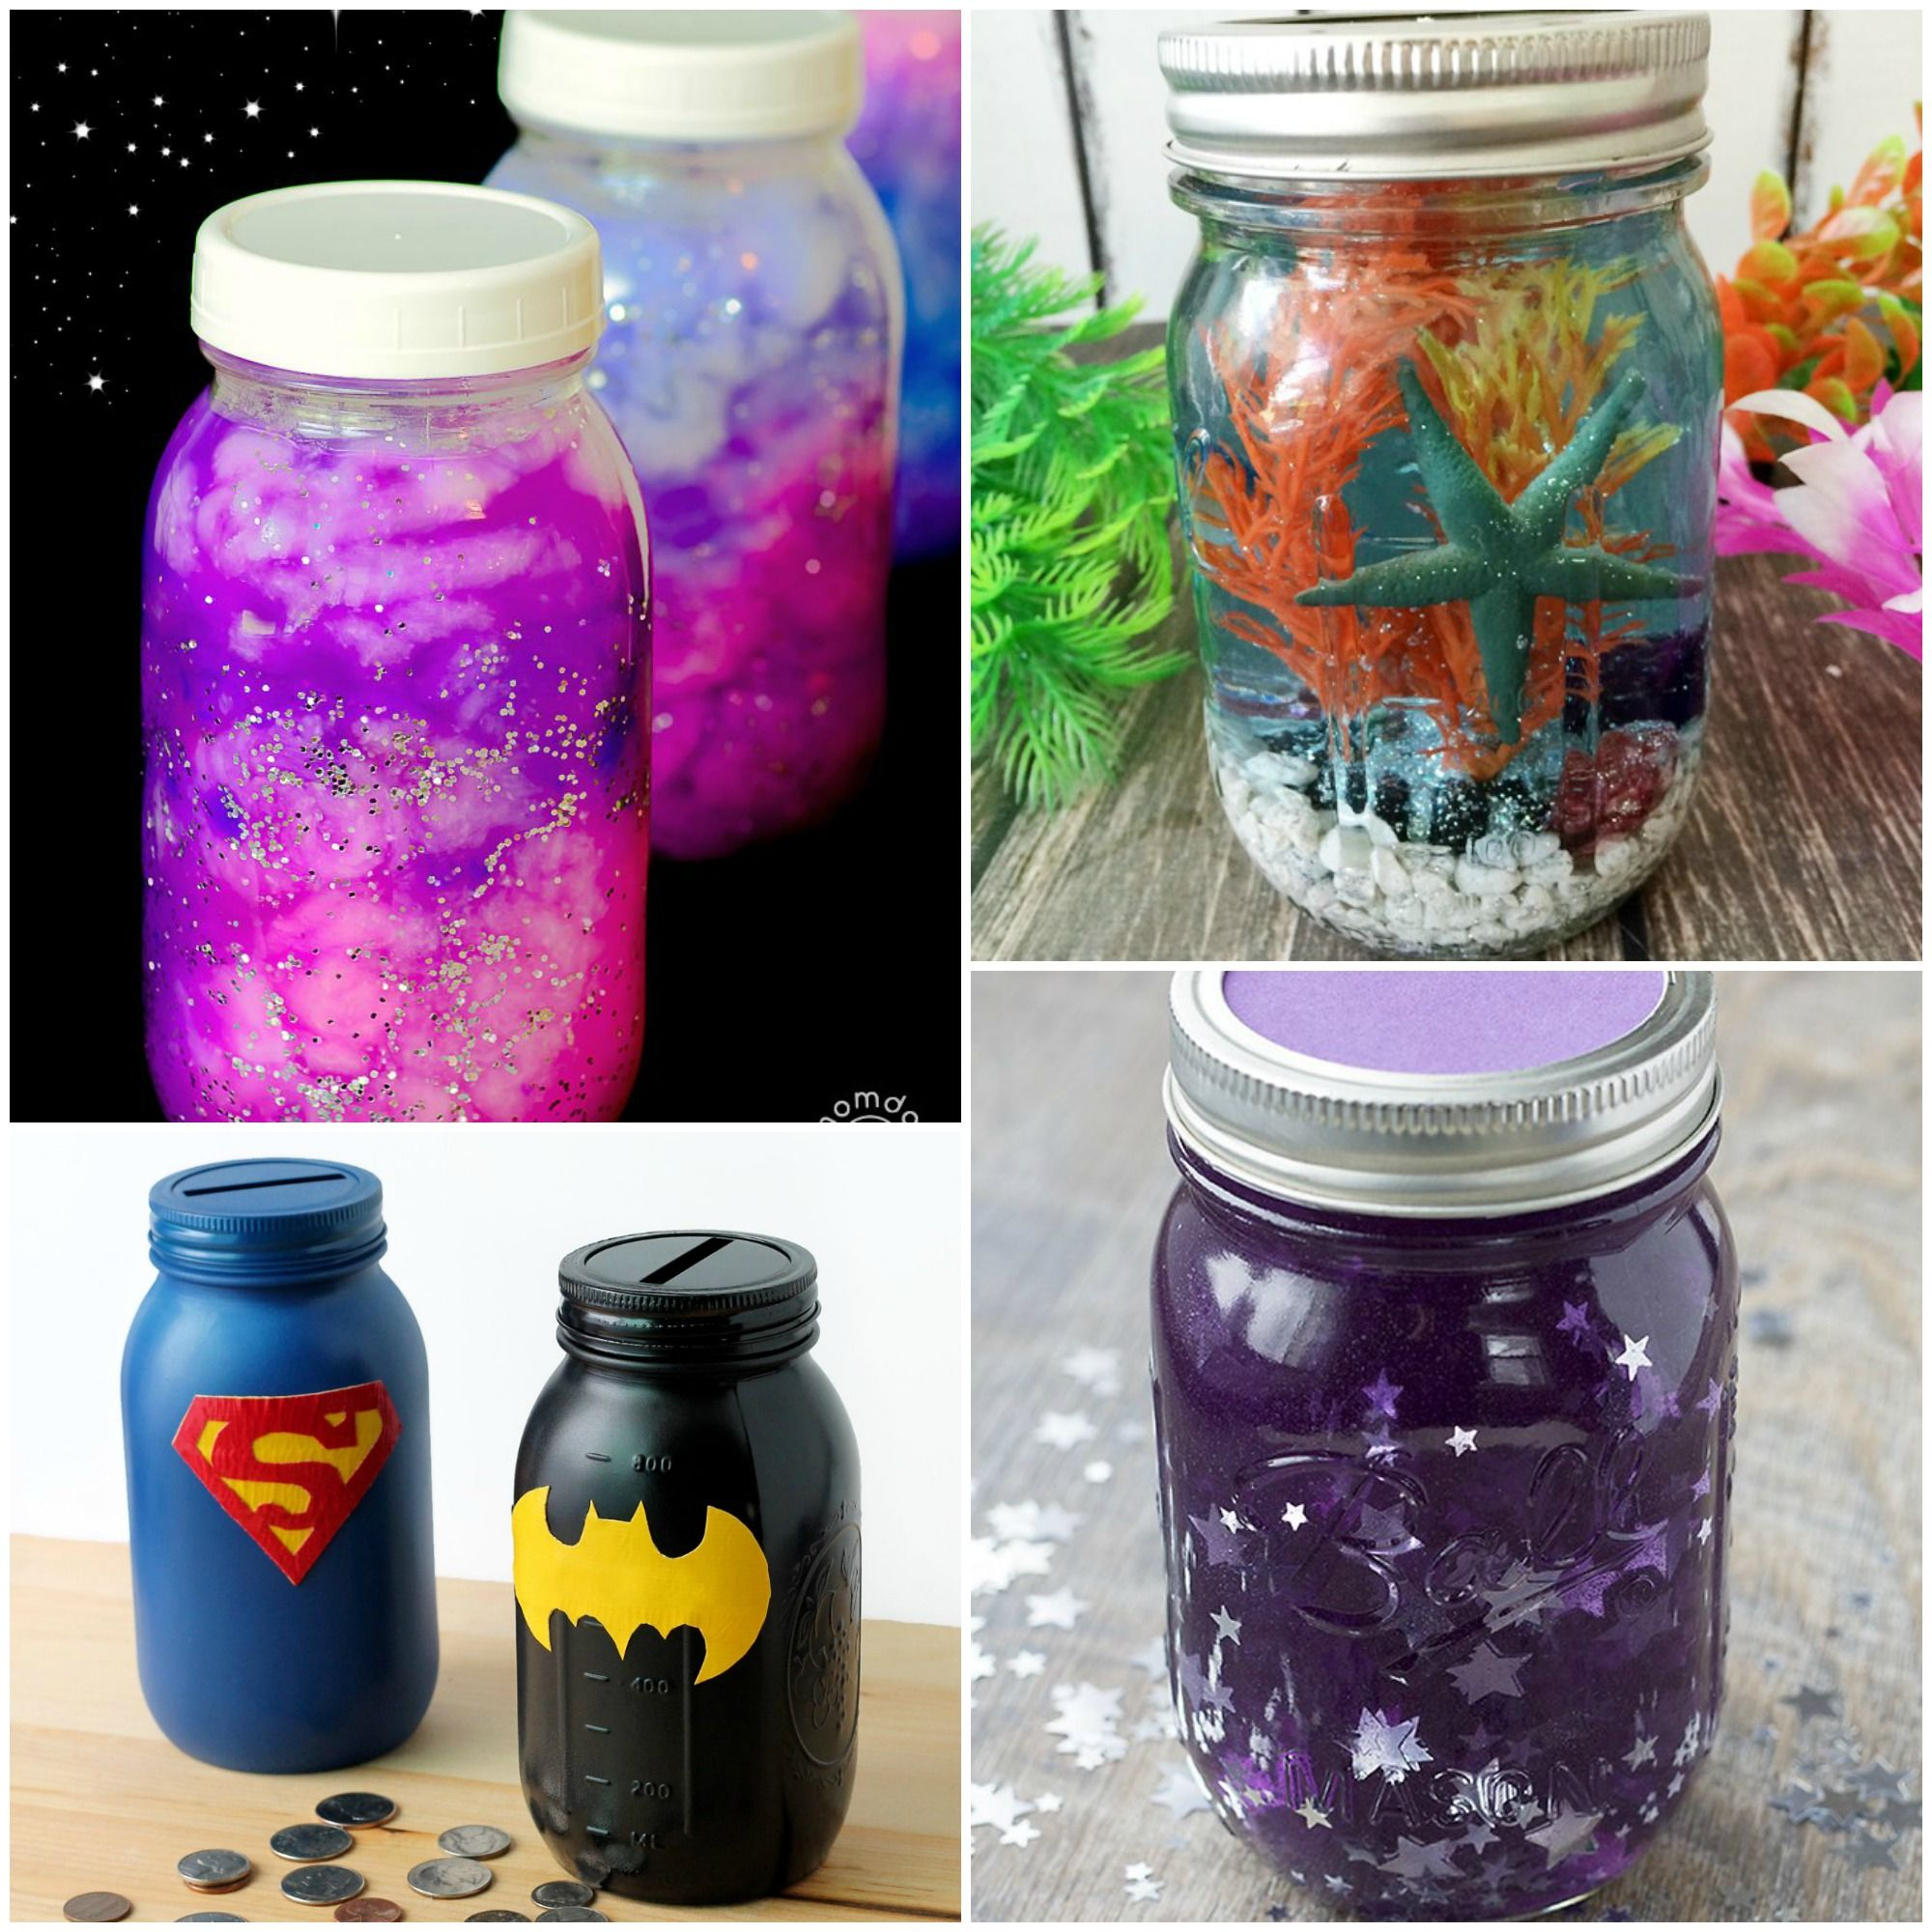 31 Best Diy Mason Jar Ideas Mason Jar Crafts Diy Mason Jar Crafts Mason Jar Diy